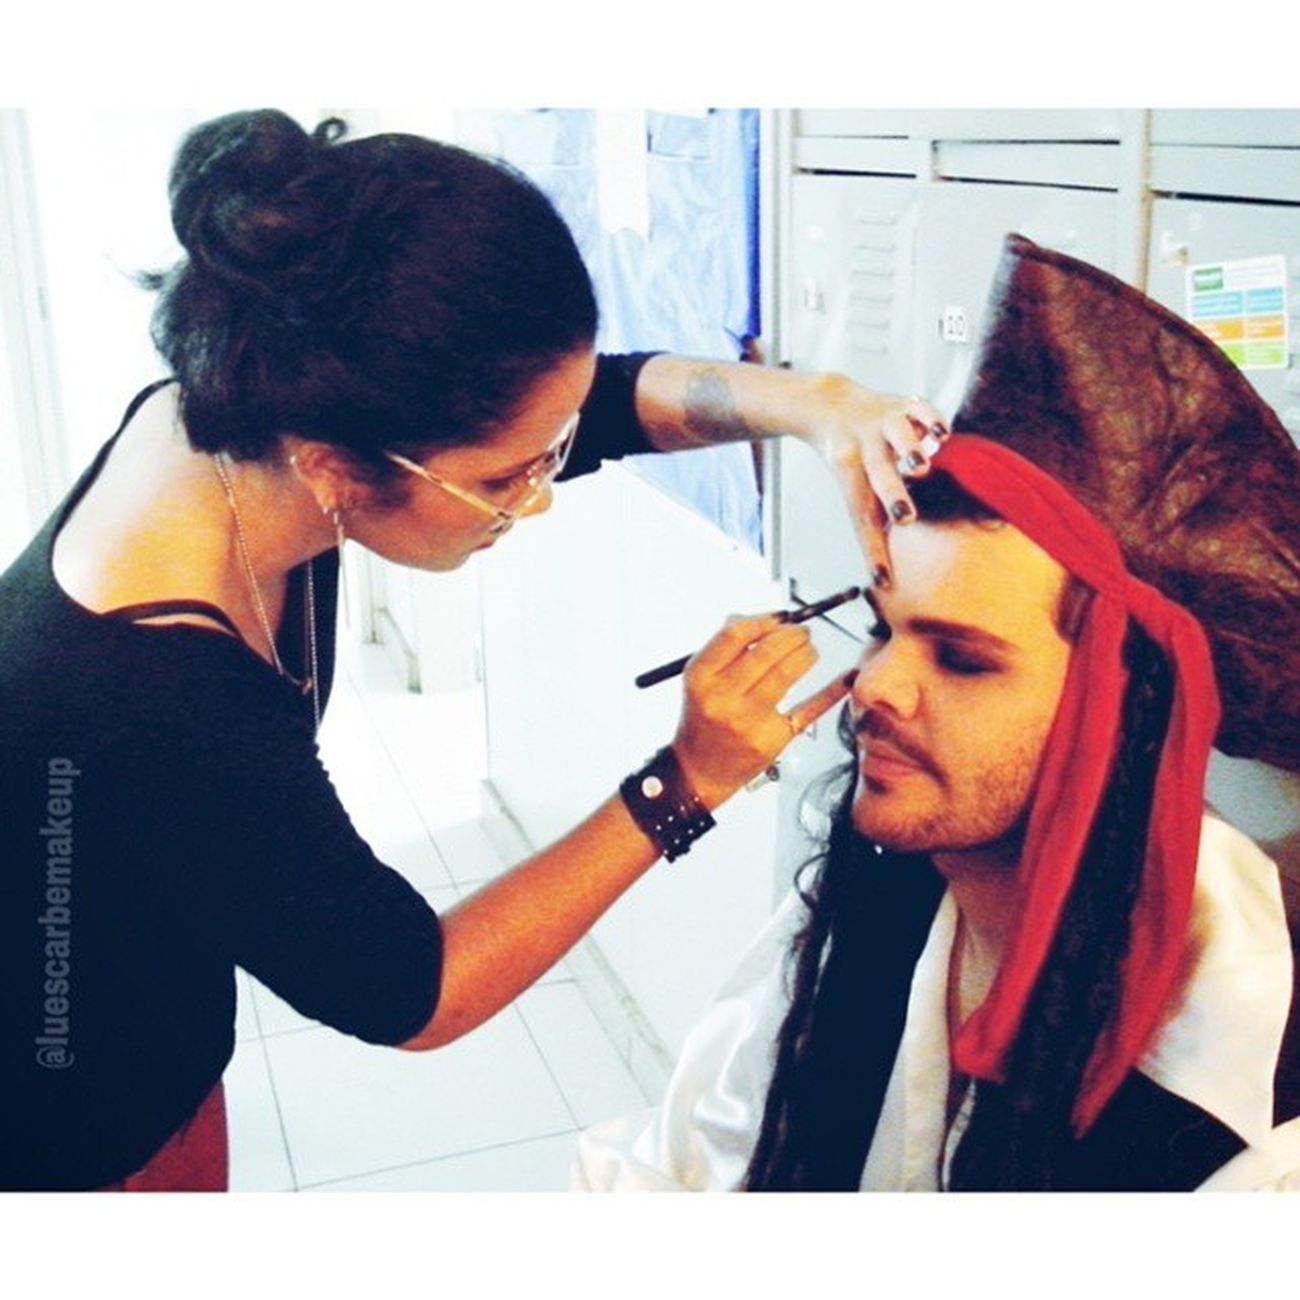 Jack Sparrow Make-Up, in Boulevard Shopping - Mob Marketing Criativo JackSparrowmakeup Makeup Maquiagemprofissional Maquiagemartistica caracterização art maquiadora luescarbemakeup mobmarketingcriativo